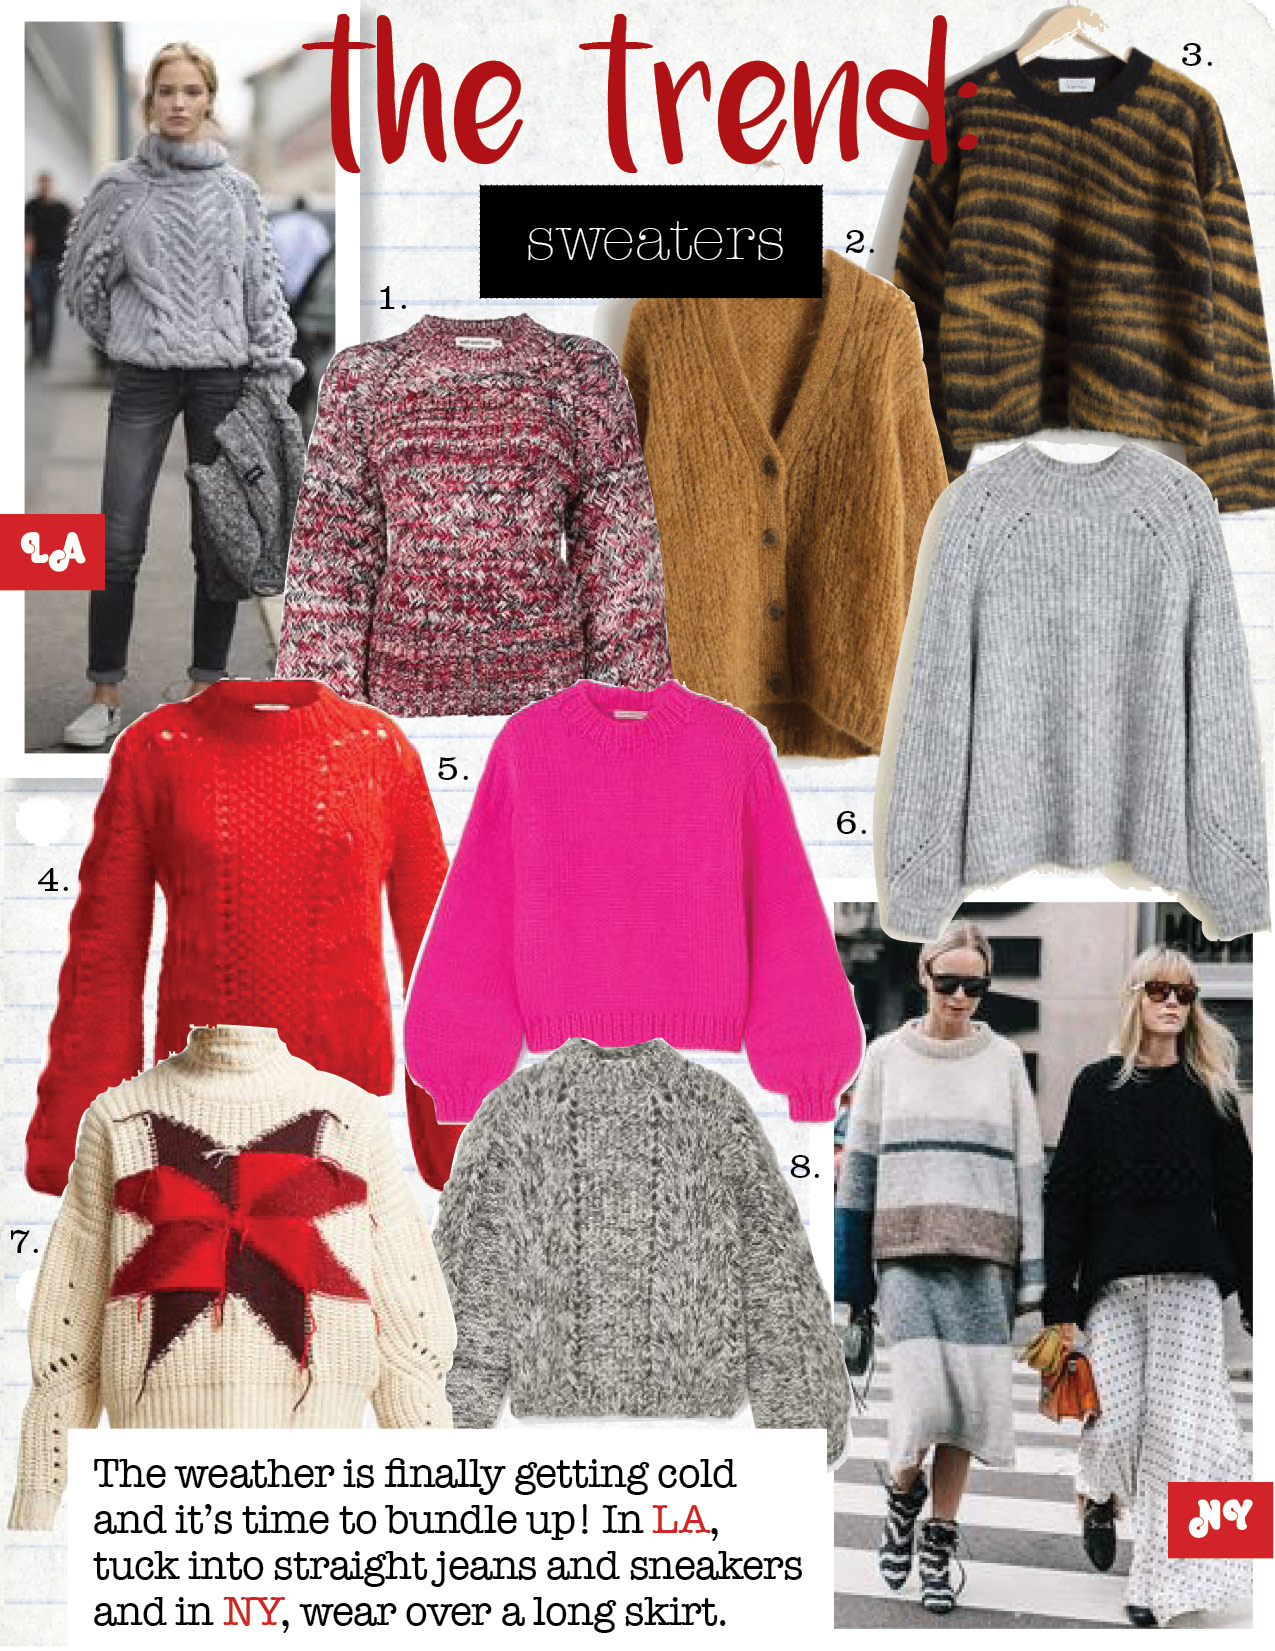 1. self-portrait knitted sweater, $221,  farfetch.com  2. & other stories brown oversized cardigan, $129,  stories.com  3. & other stories wool blend zebra sweater, $99,  stories.com  4. ganni Julliard mohair knit sweater, $419,  matchesfashion.com  5. Ulla Johnson merino wool sweater, $595,  net-a-porter.com  6. mango knit sweater, $41,  mango.com  7. Isabel Marant hanoi intarsia-knit sweater, $354,  matchesfashion.com  8. ganni Julliard mohair and wool blend sweater, $505,  net-a-porter.com